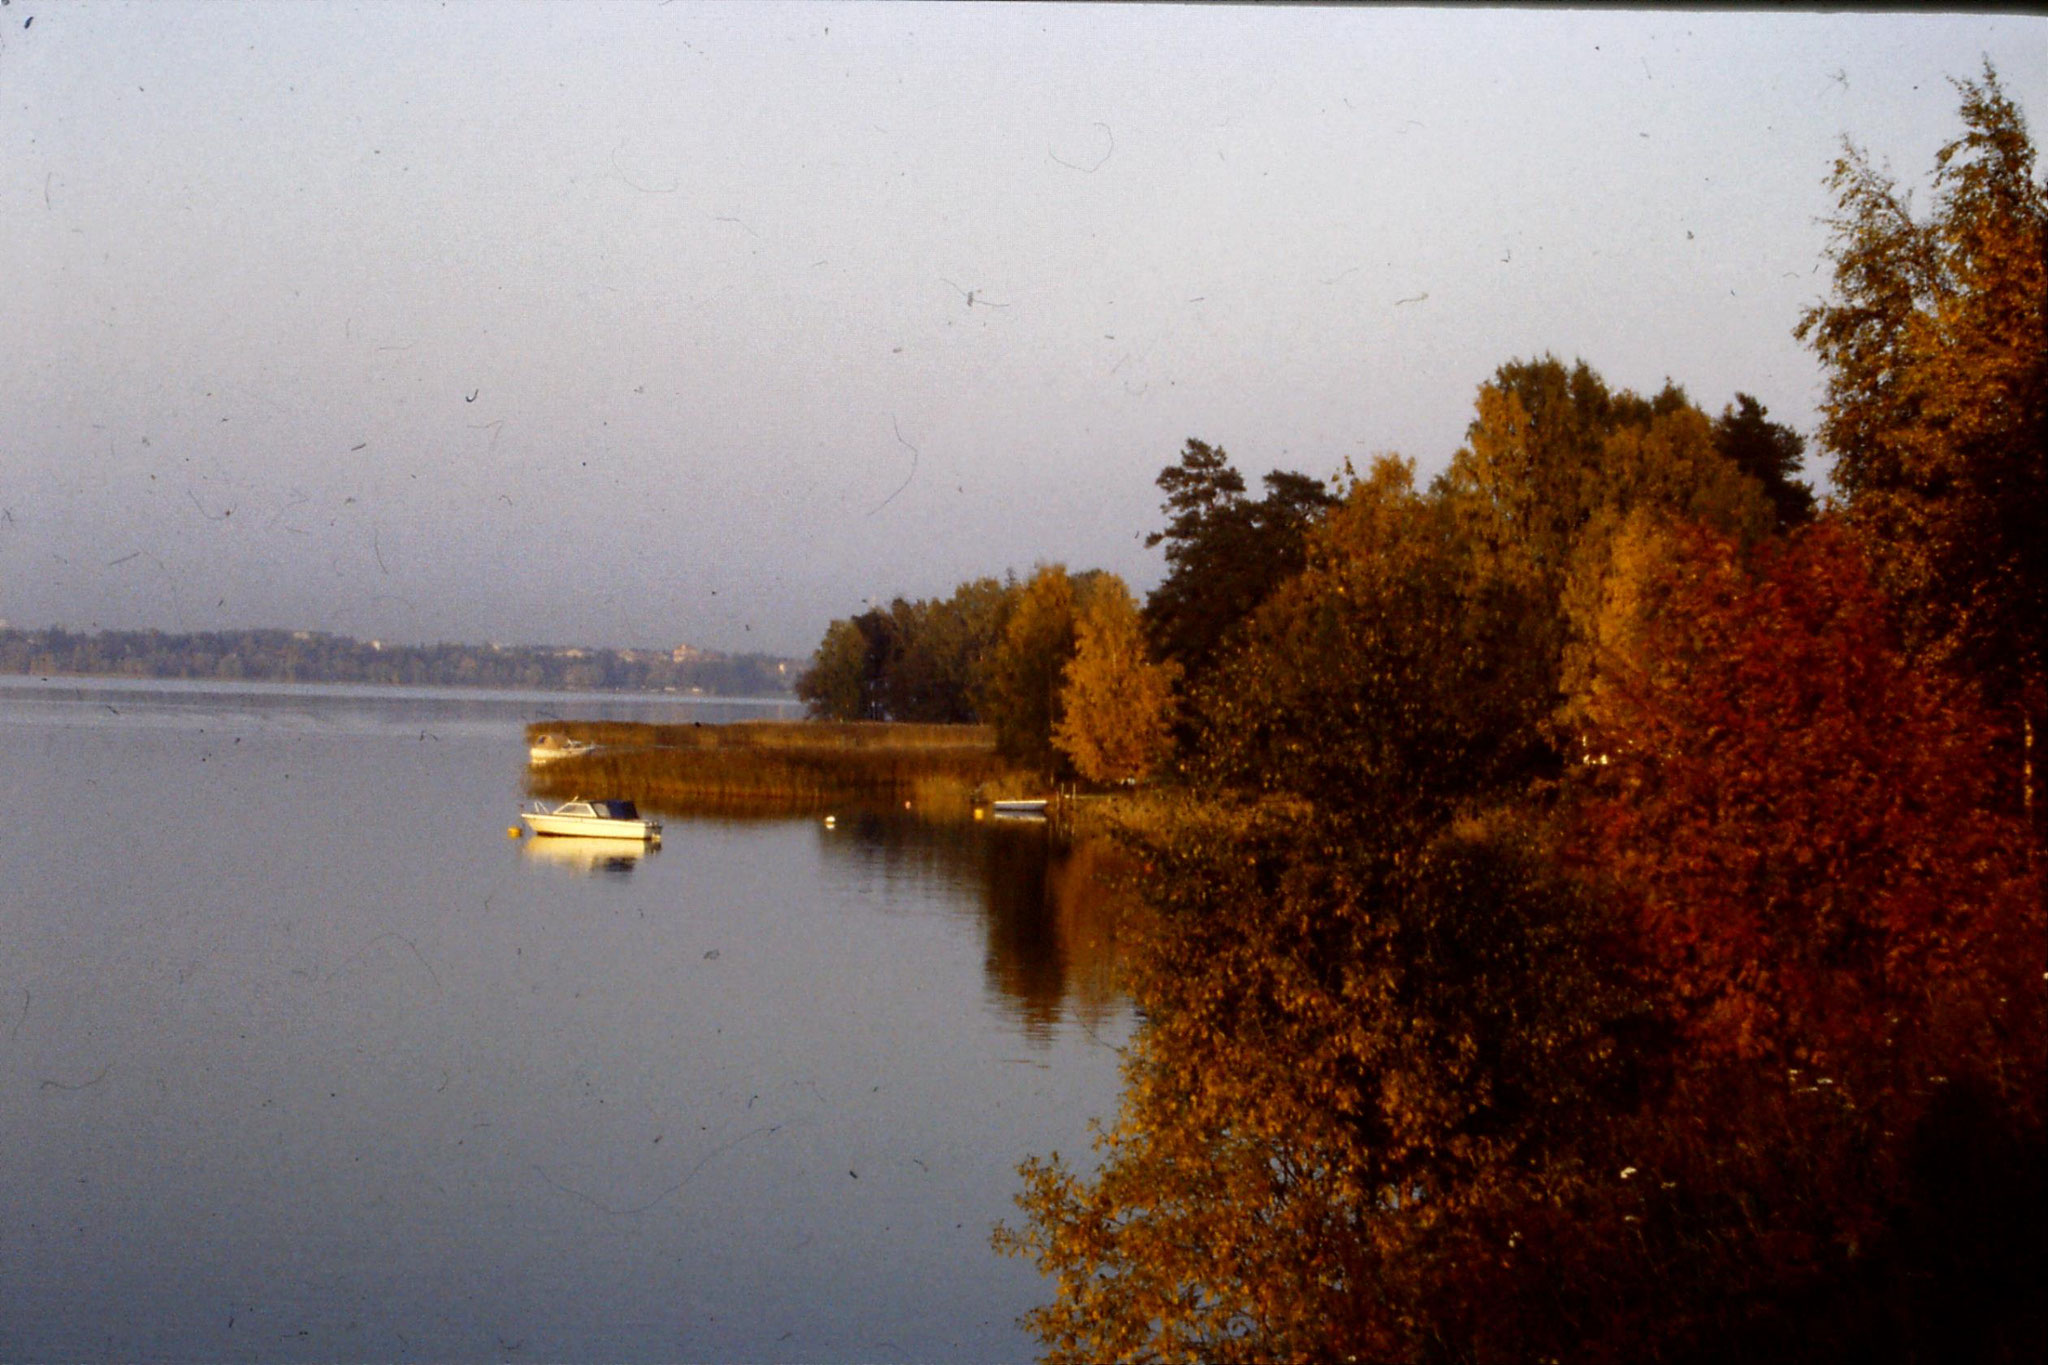 4/10/1988: 0: across lake towards Lutheran Cathedral